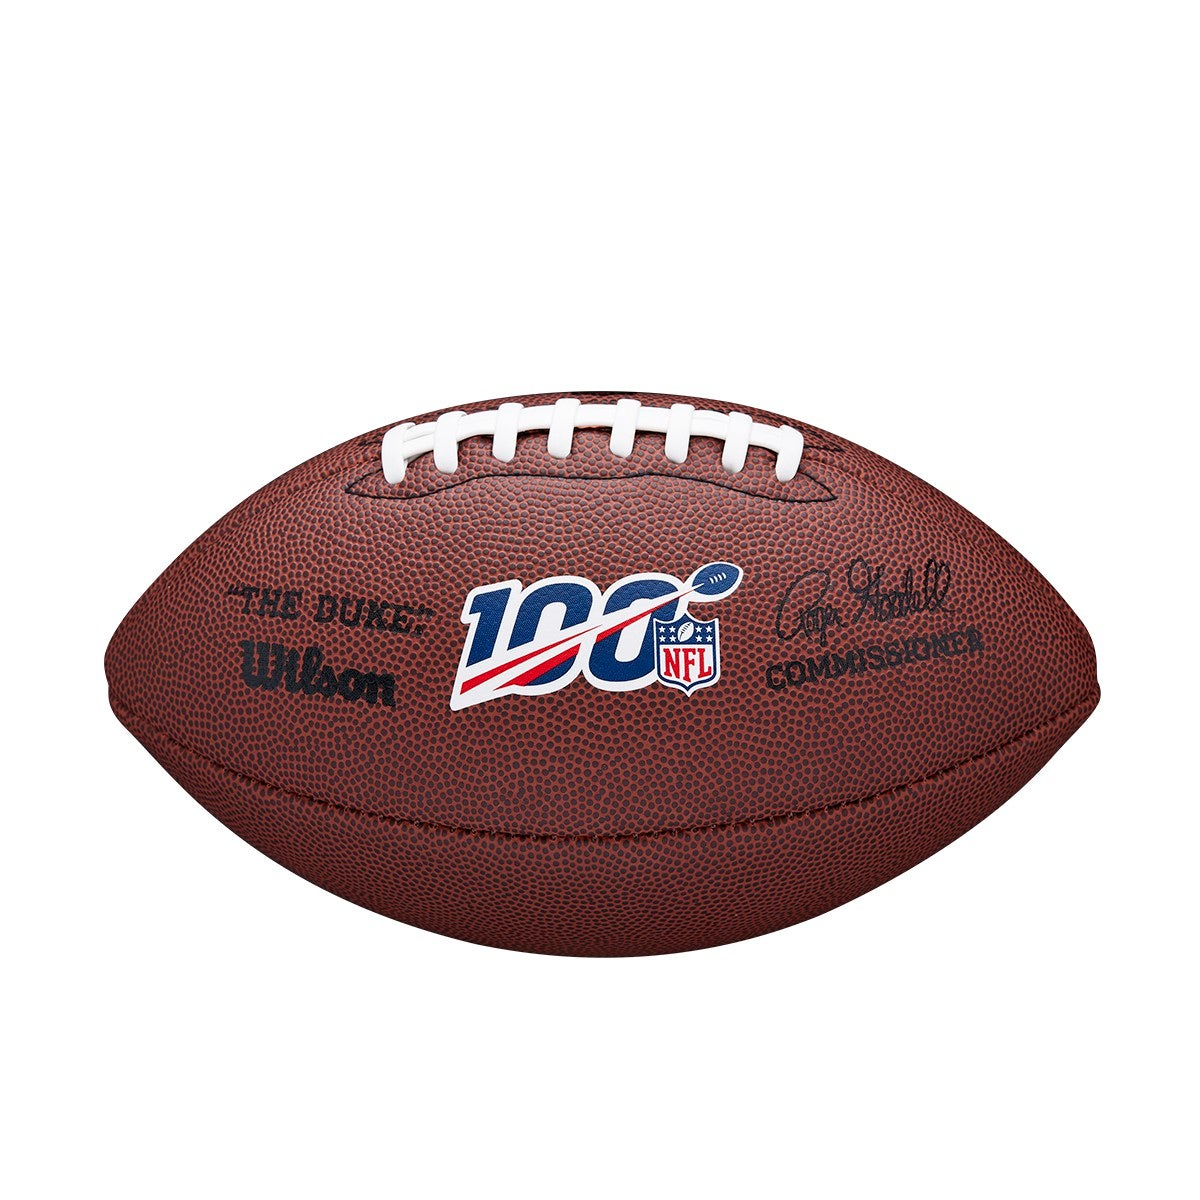 NFL 100 The Duke Replica Composite Football